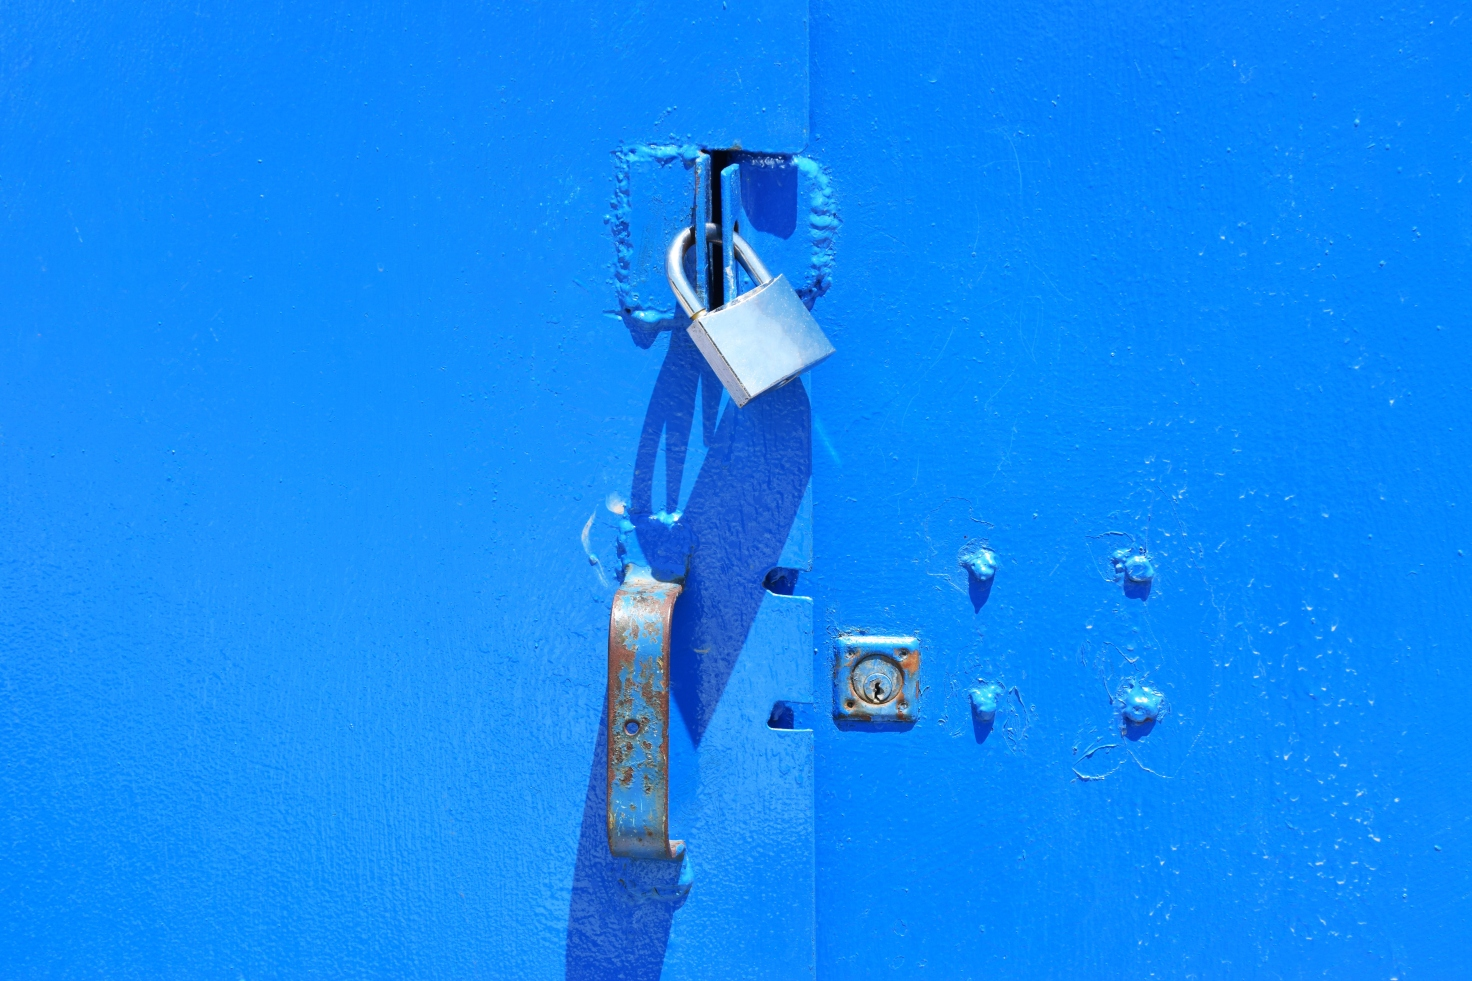 lock-on-blue-gate